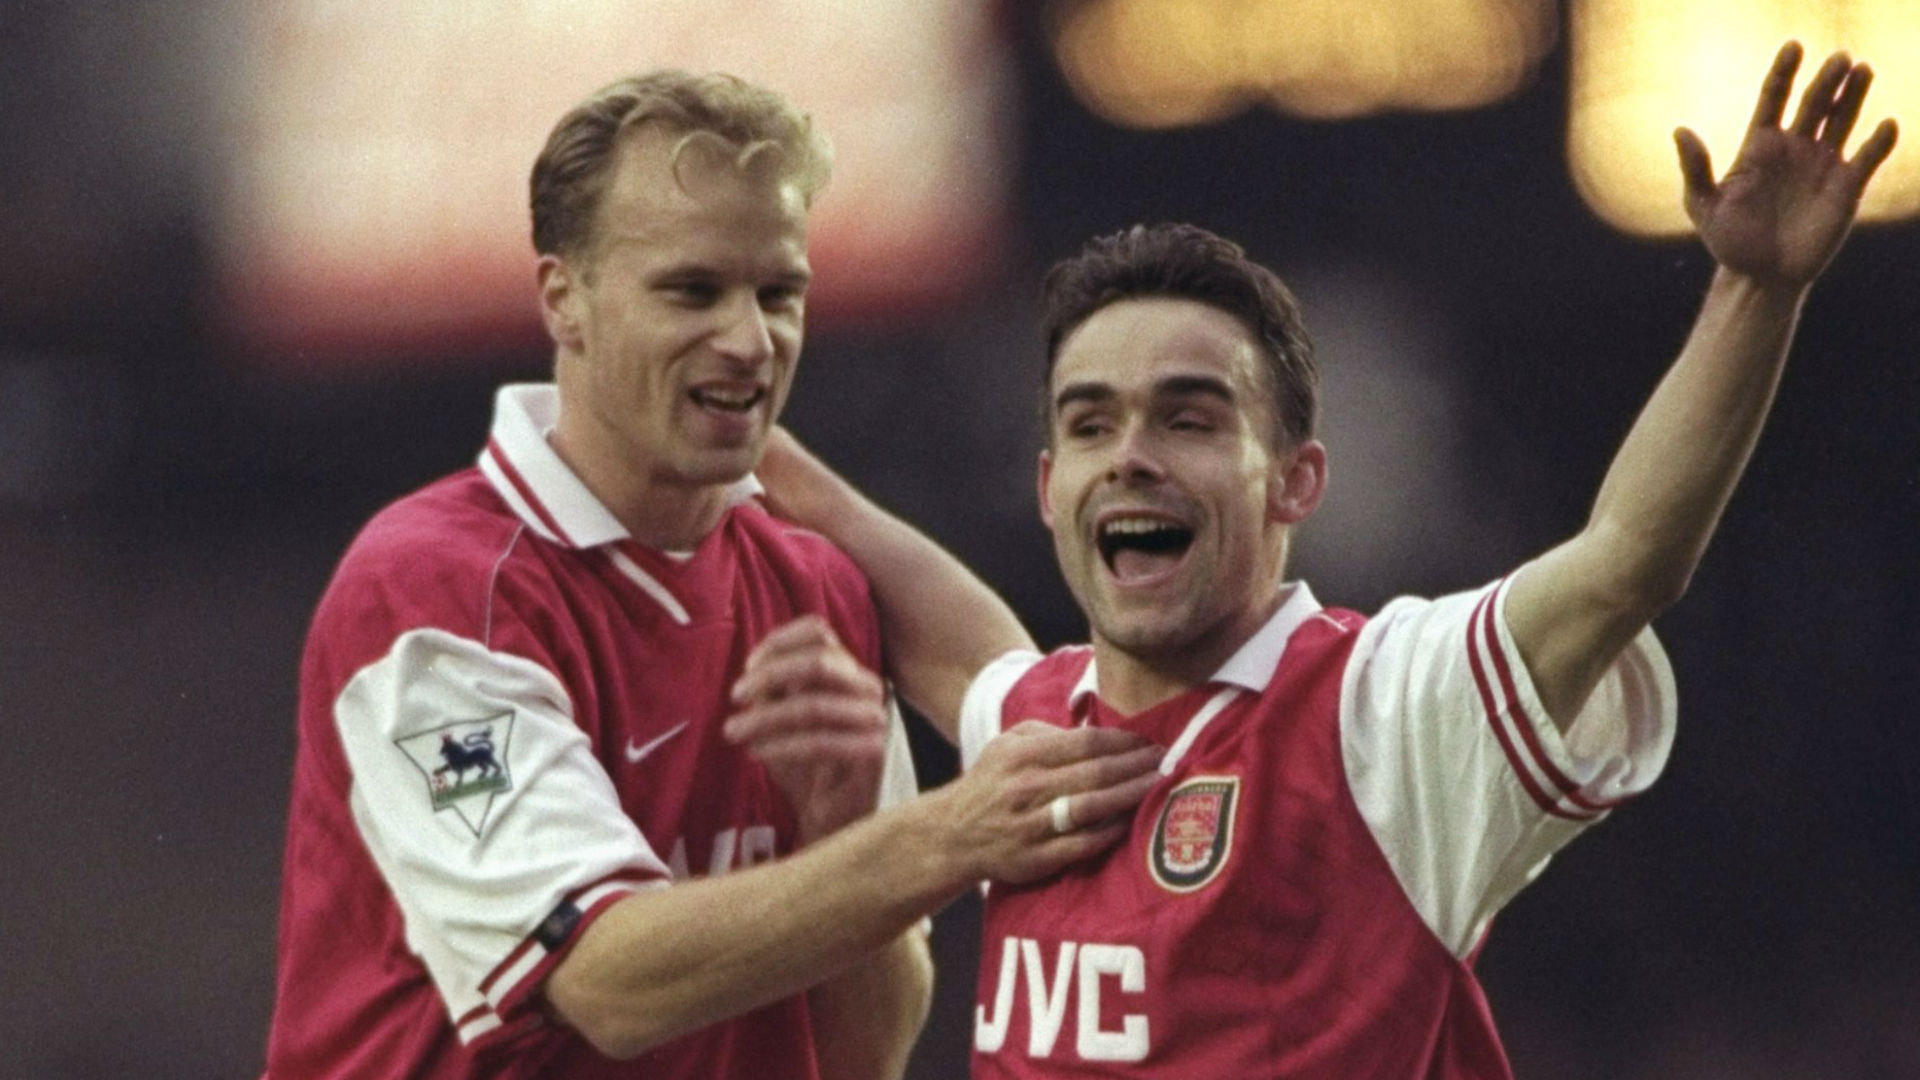 overmars and bergkamp